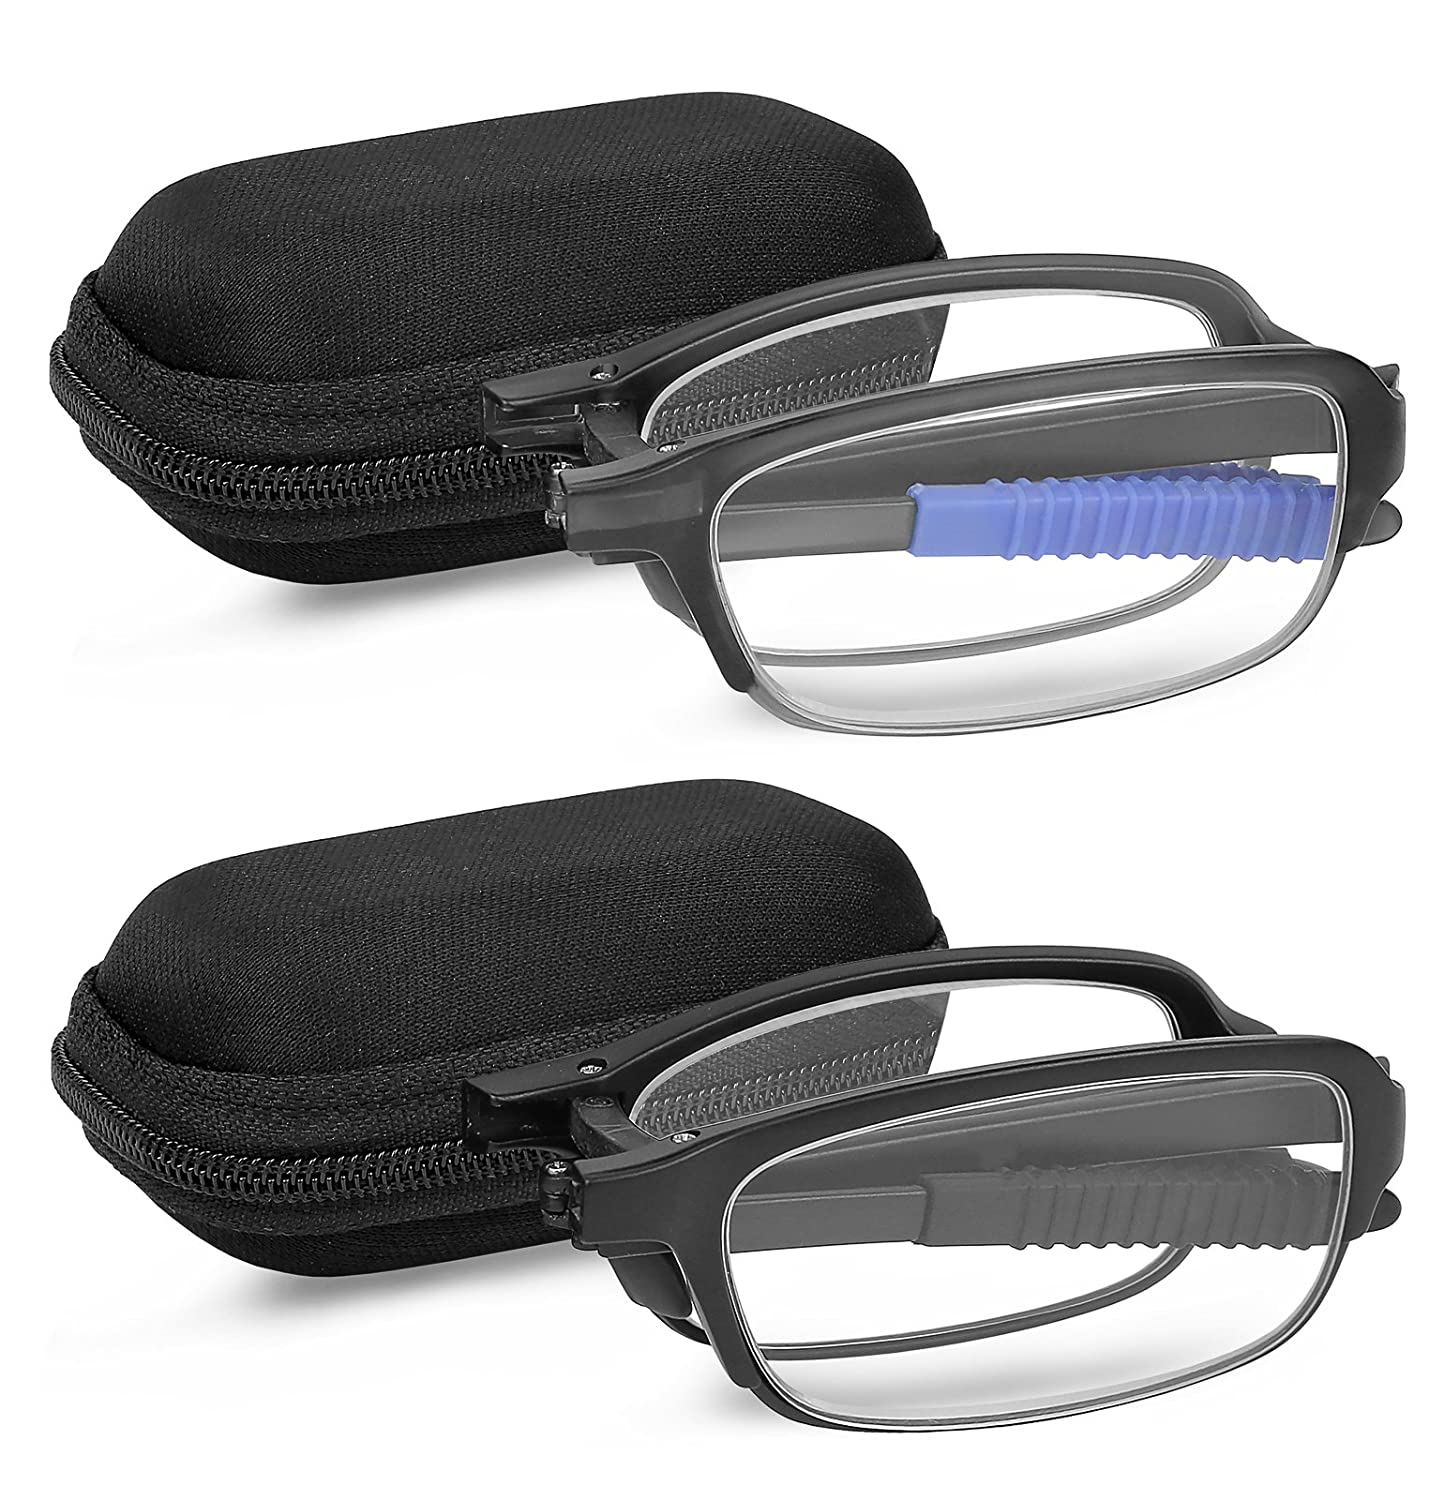 Reading Glasses 2 Pair Fashion Folding Readers with Cases Unisex Glasses for Reading for Men and Women